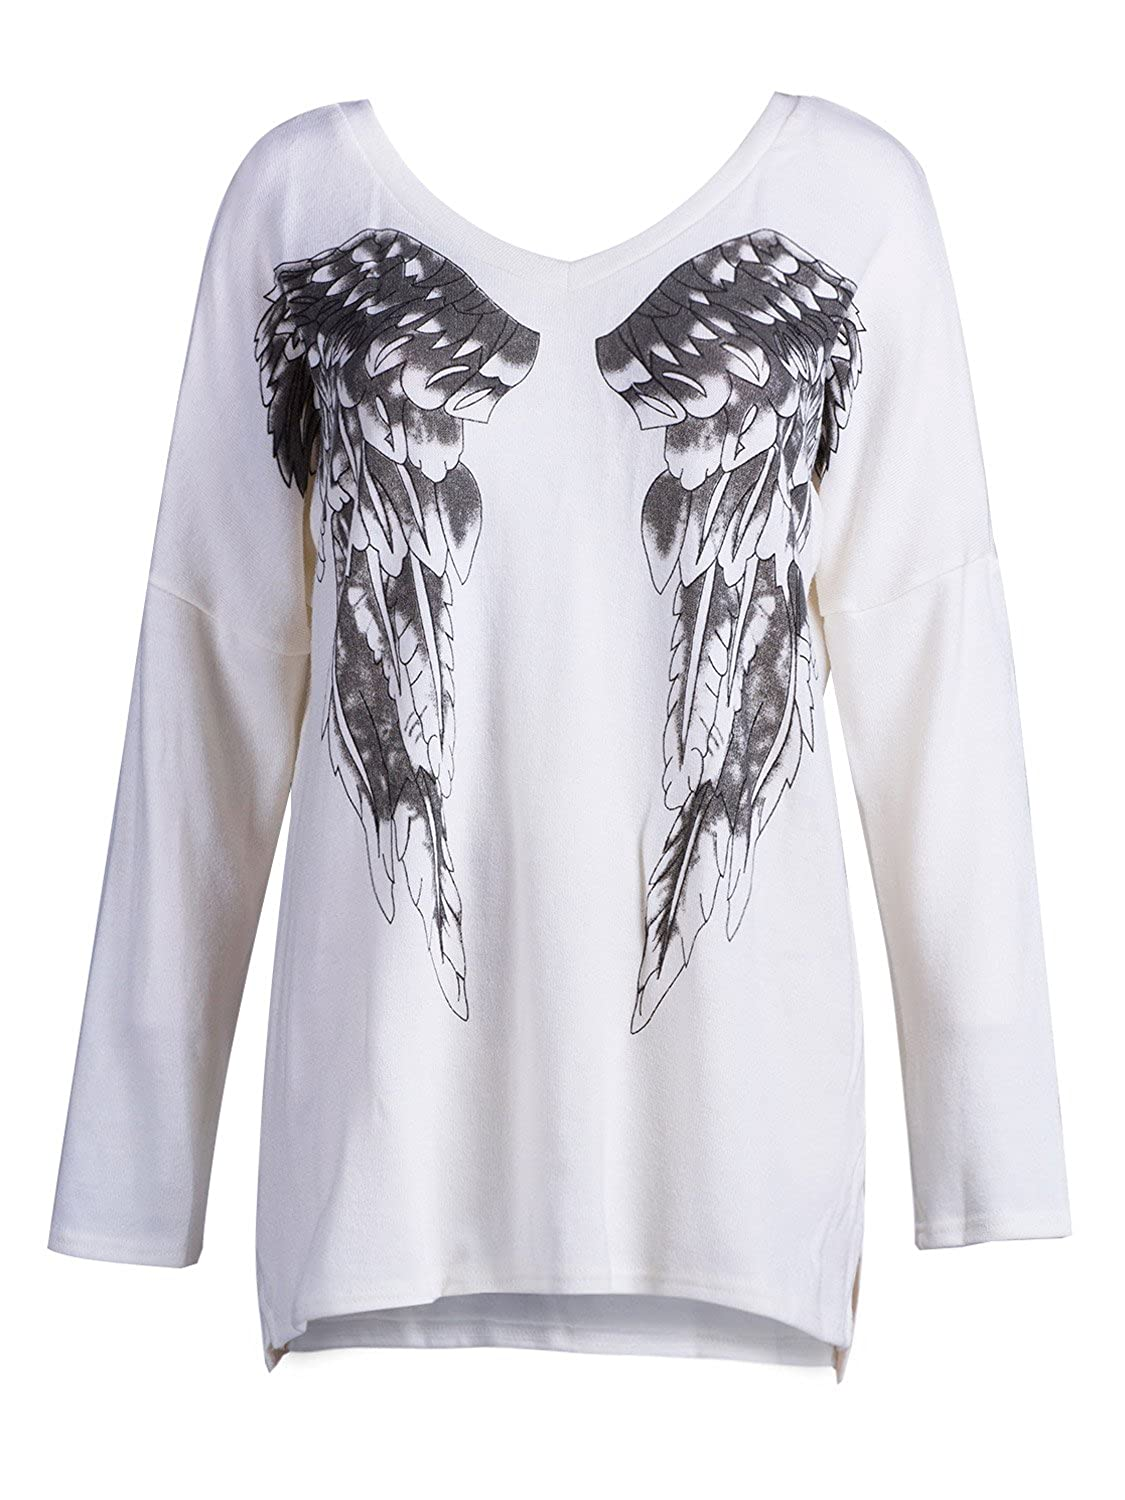 Choies Women Angel Wings Print Loose Fit Knitted Long Sleeve T-Shirt,White